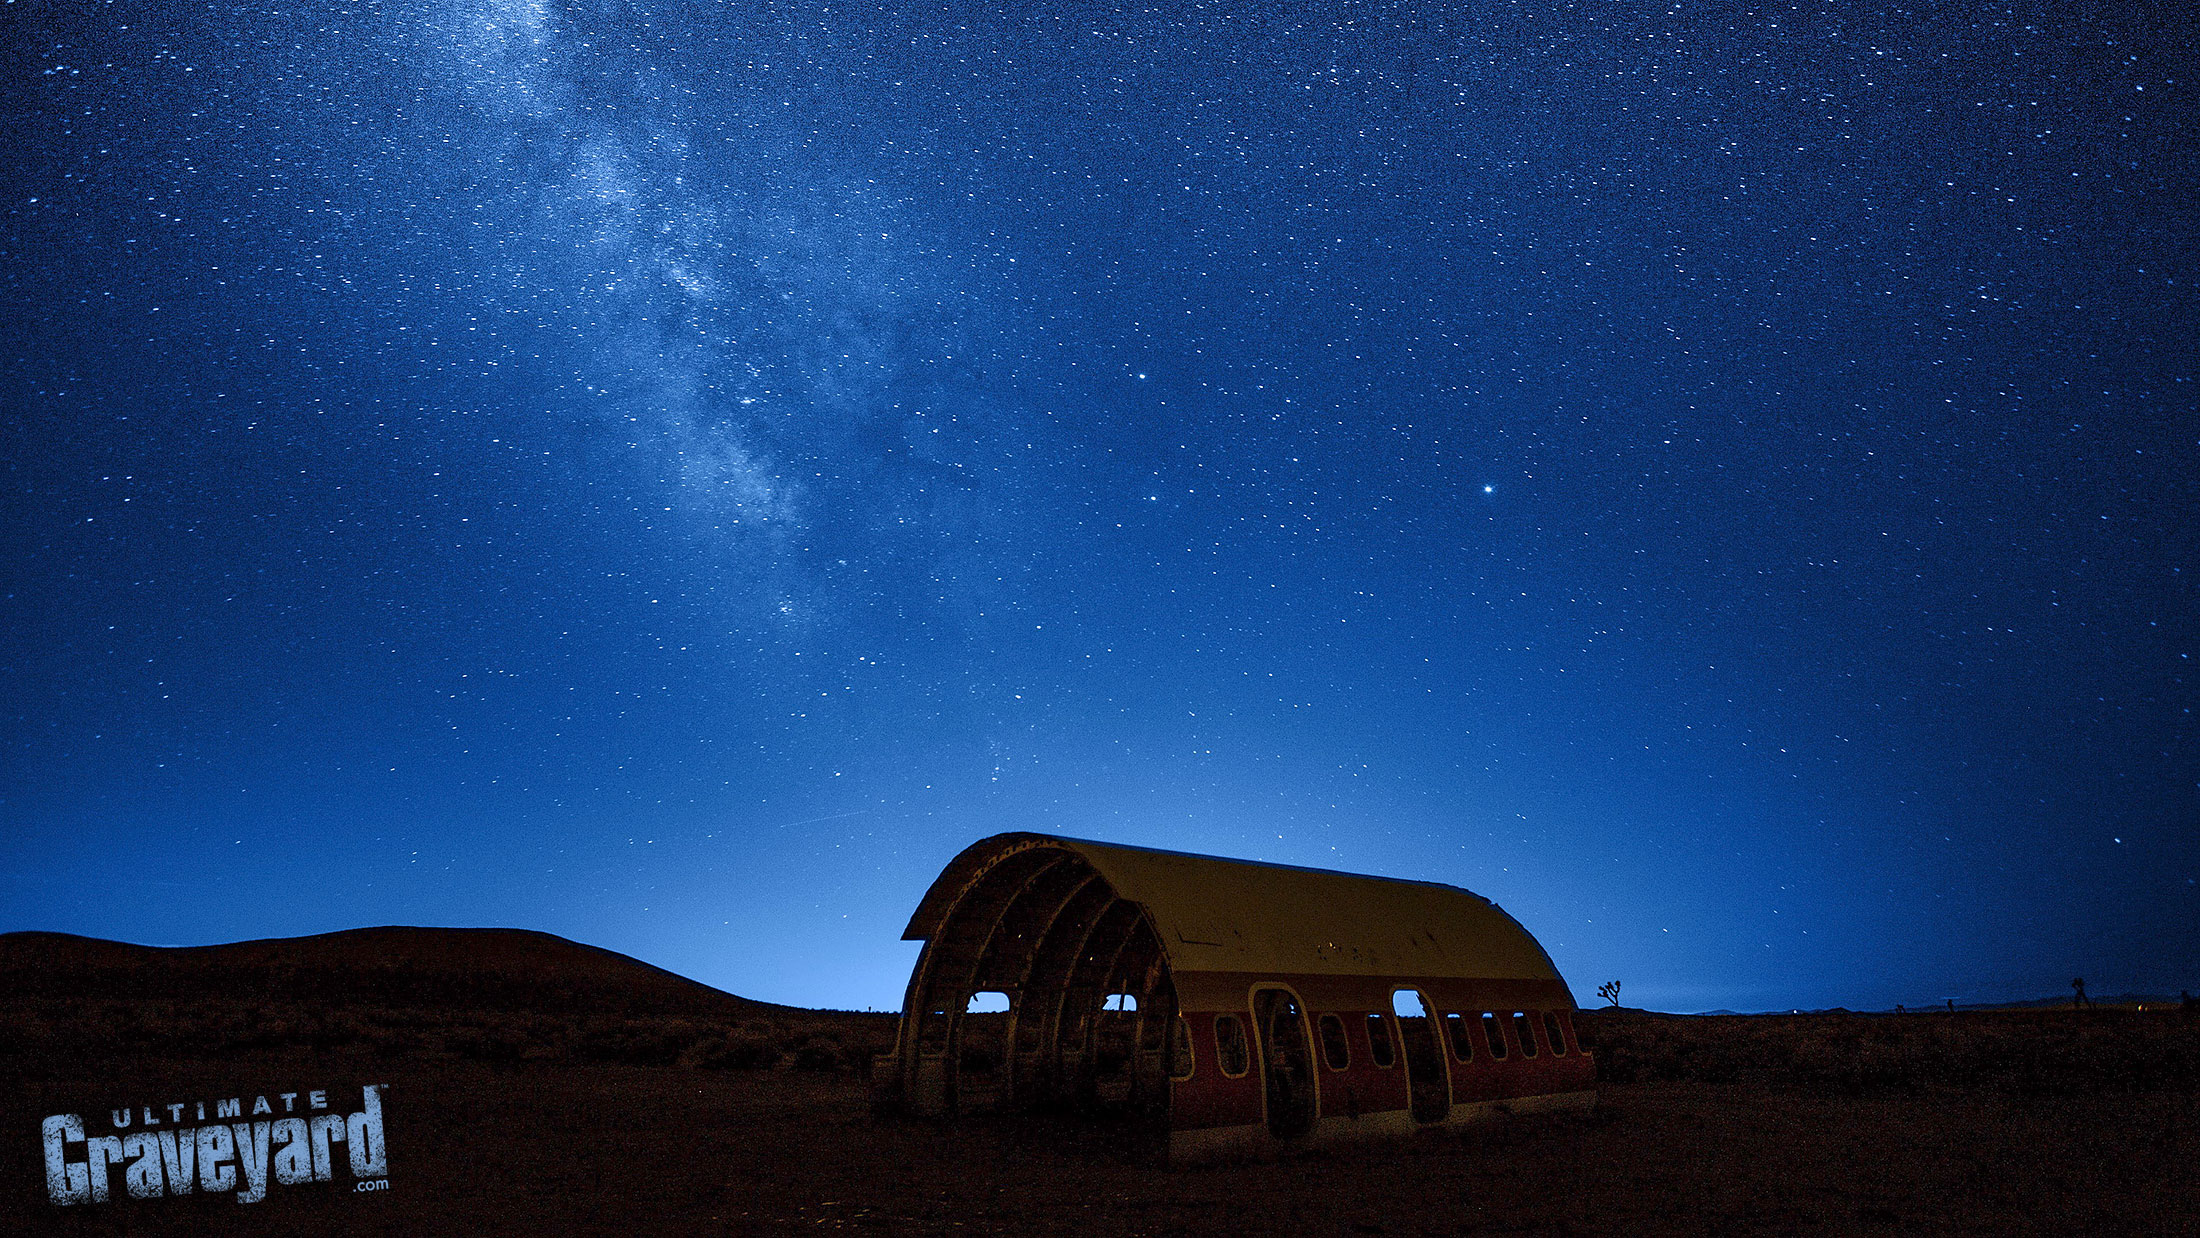 Ultimate Graveyard at night - desert astral photography wtih time-lapse and long exposure at the mojave desert film location